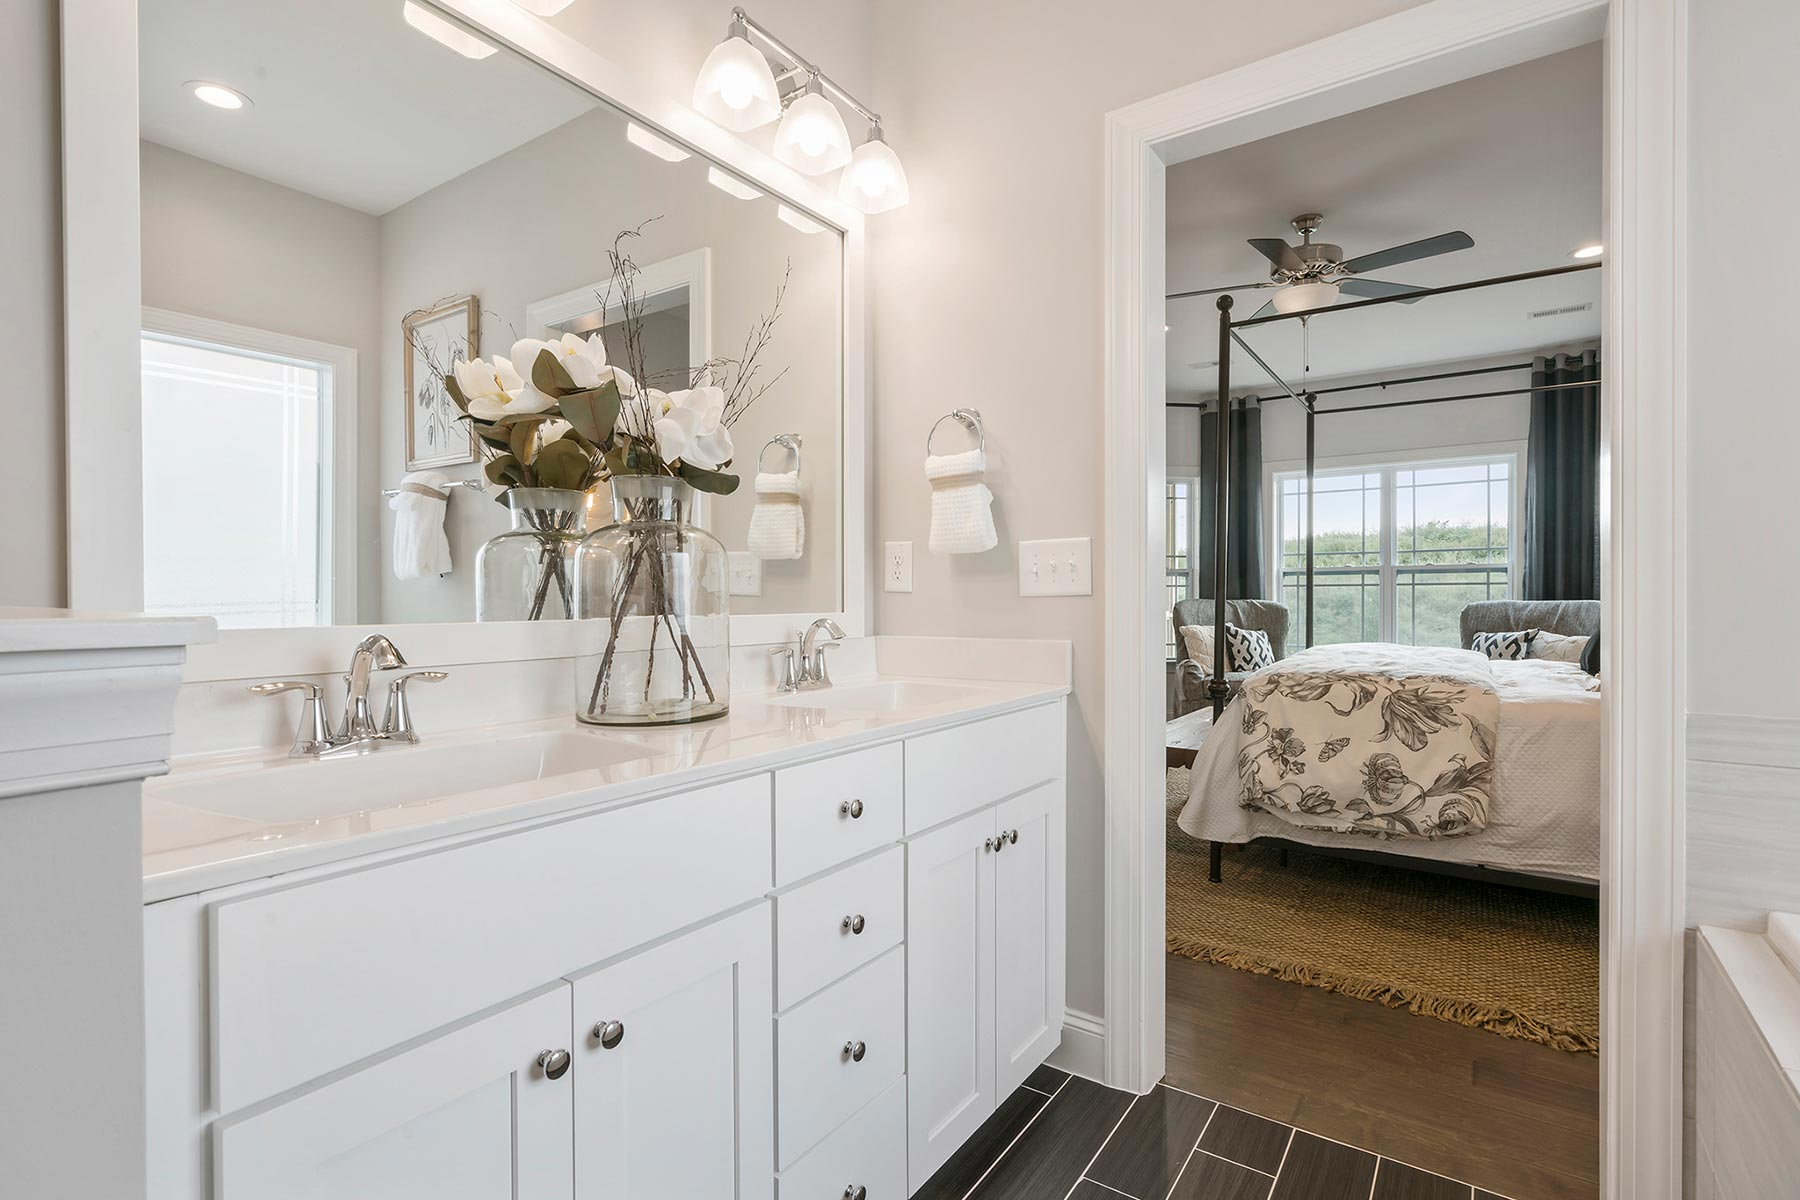 Camden Plan Bathroom_Master Bath at Ballentine Place in Holly Springs North Carolina by Mattamy Homes